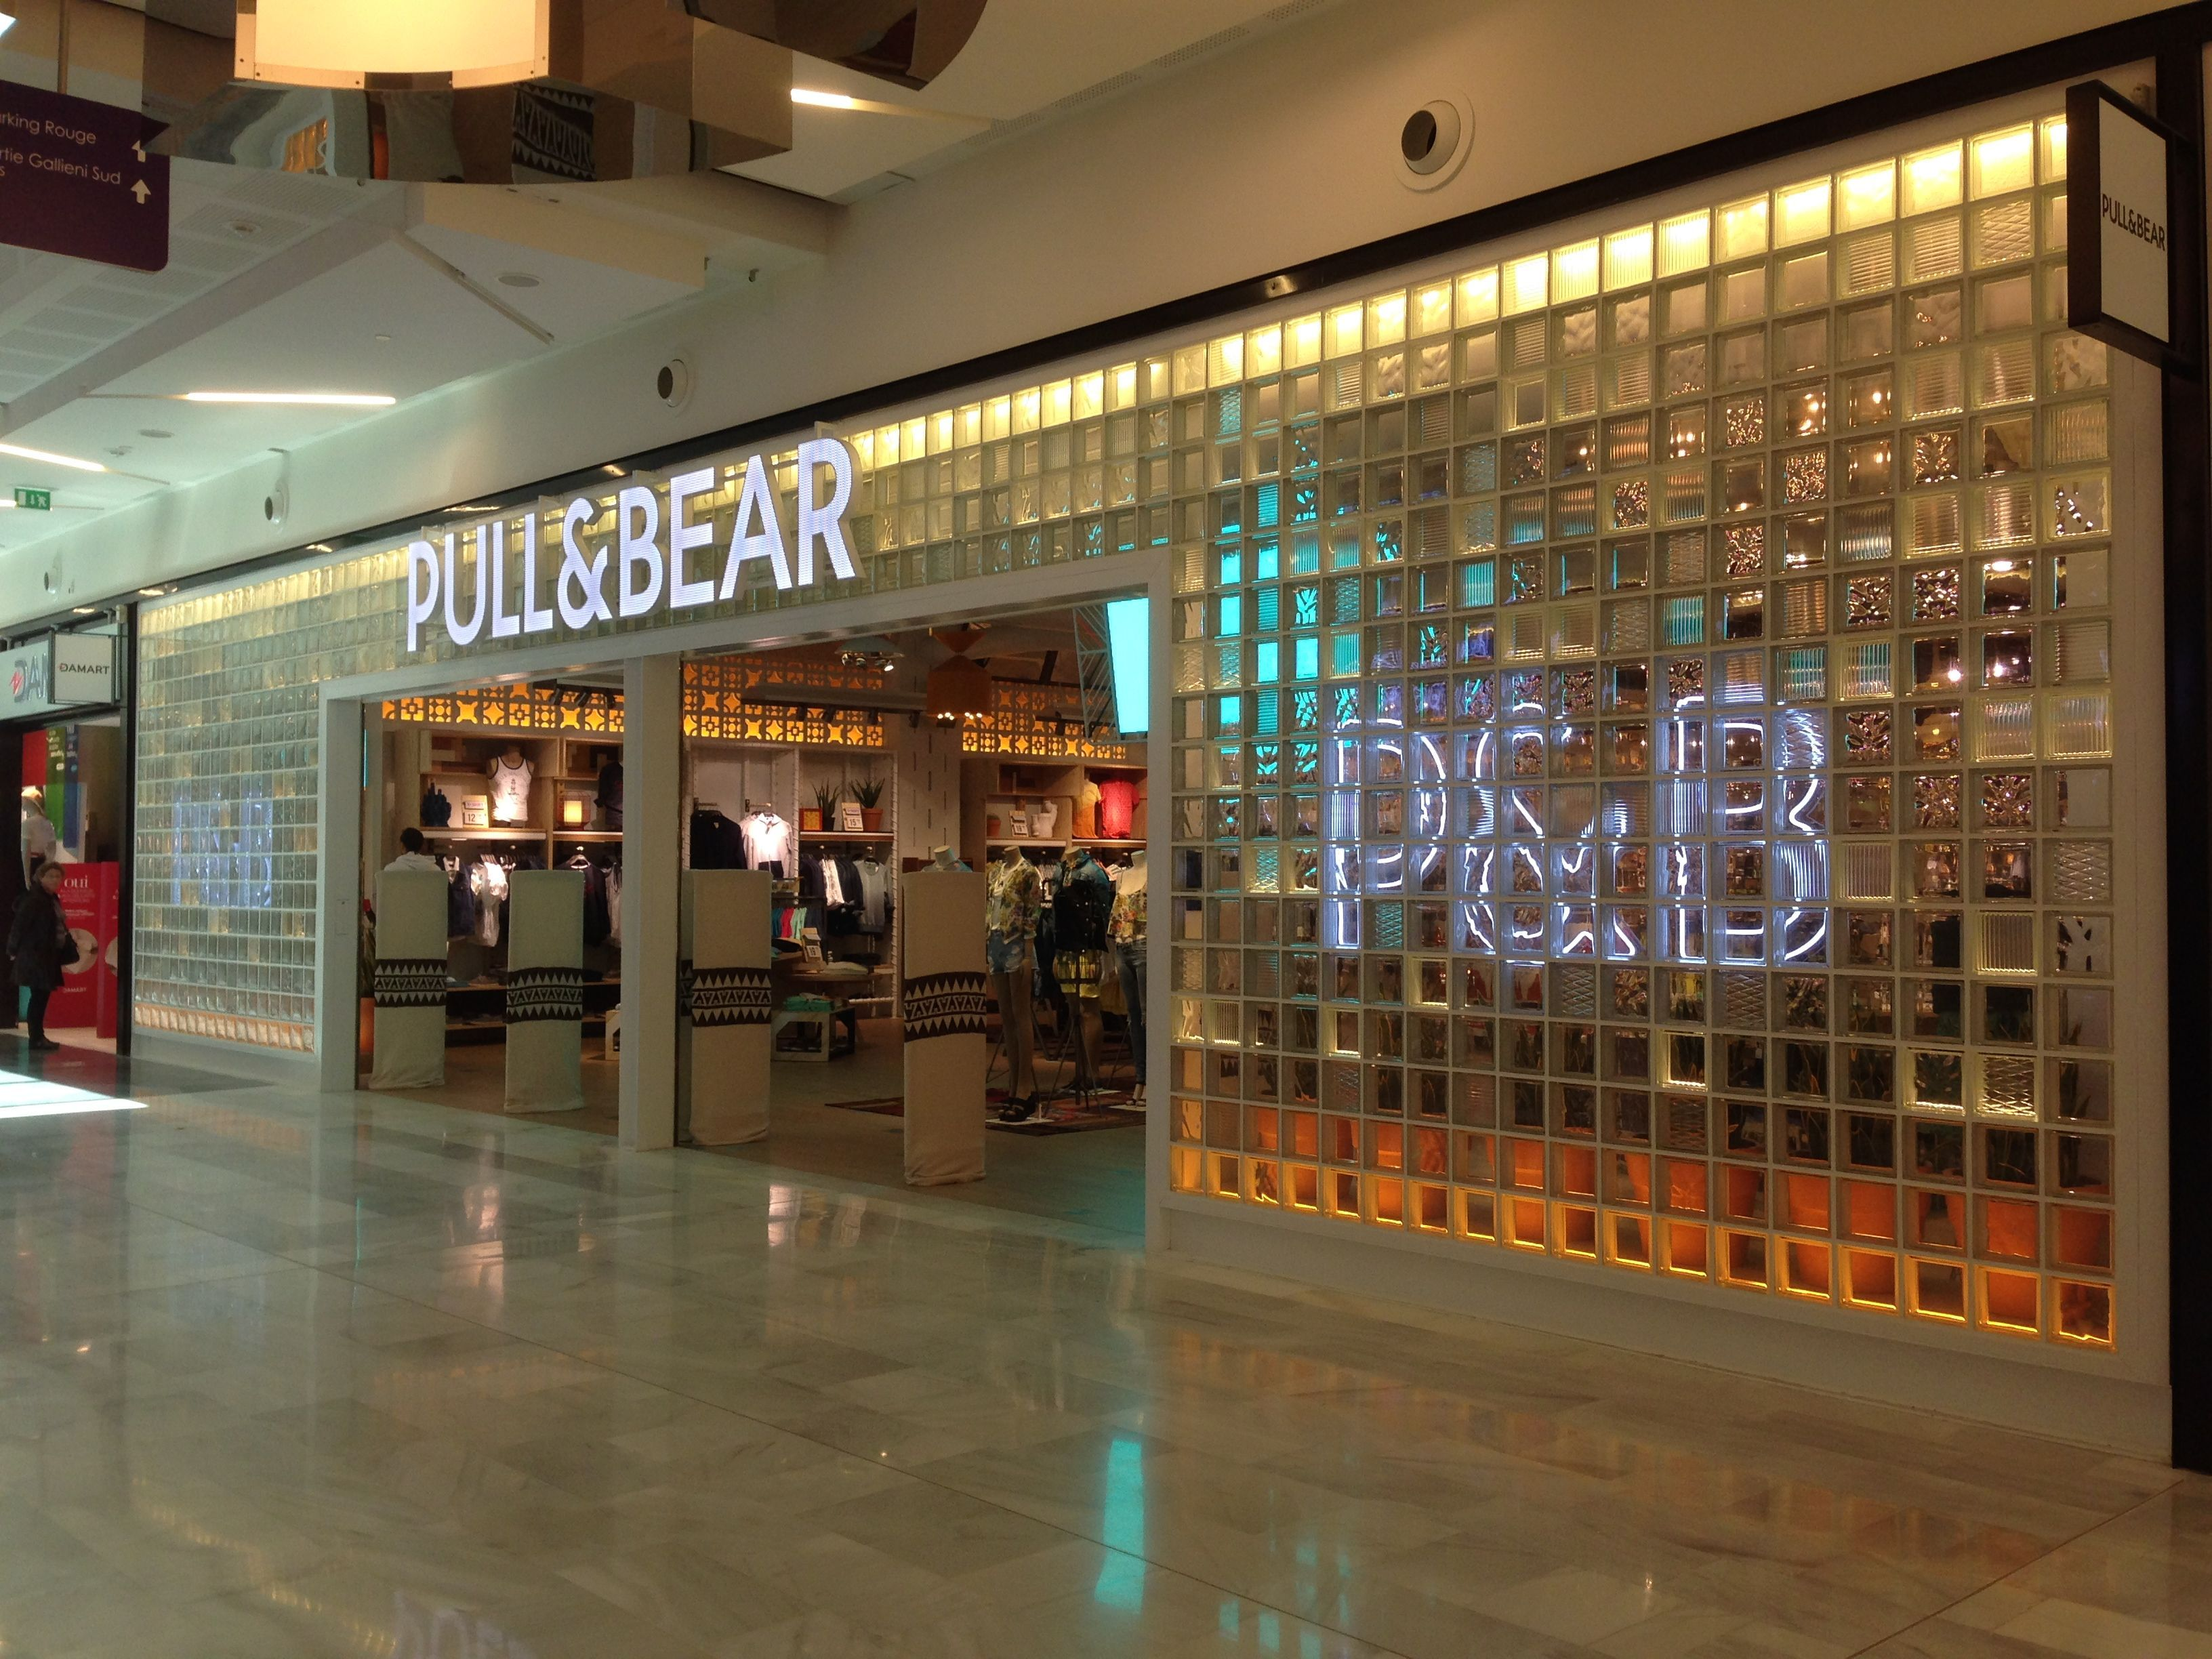 special section huge sale presenting pullbear #qwartz | Shop | Pull & bear, Neon signs, Bear